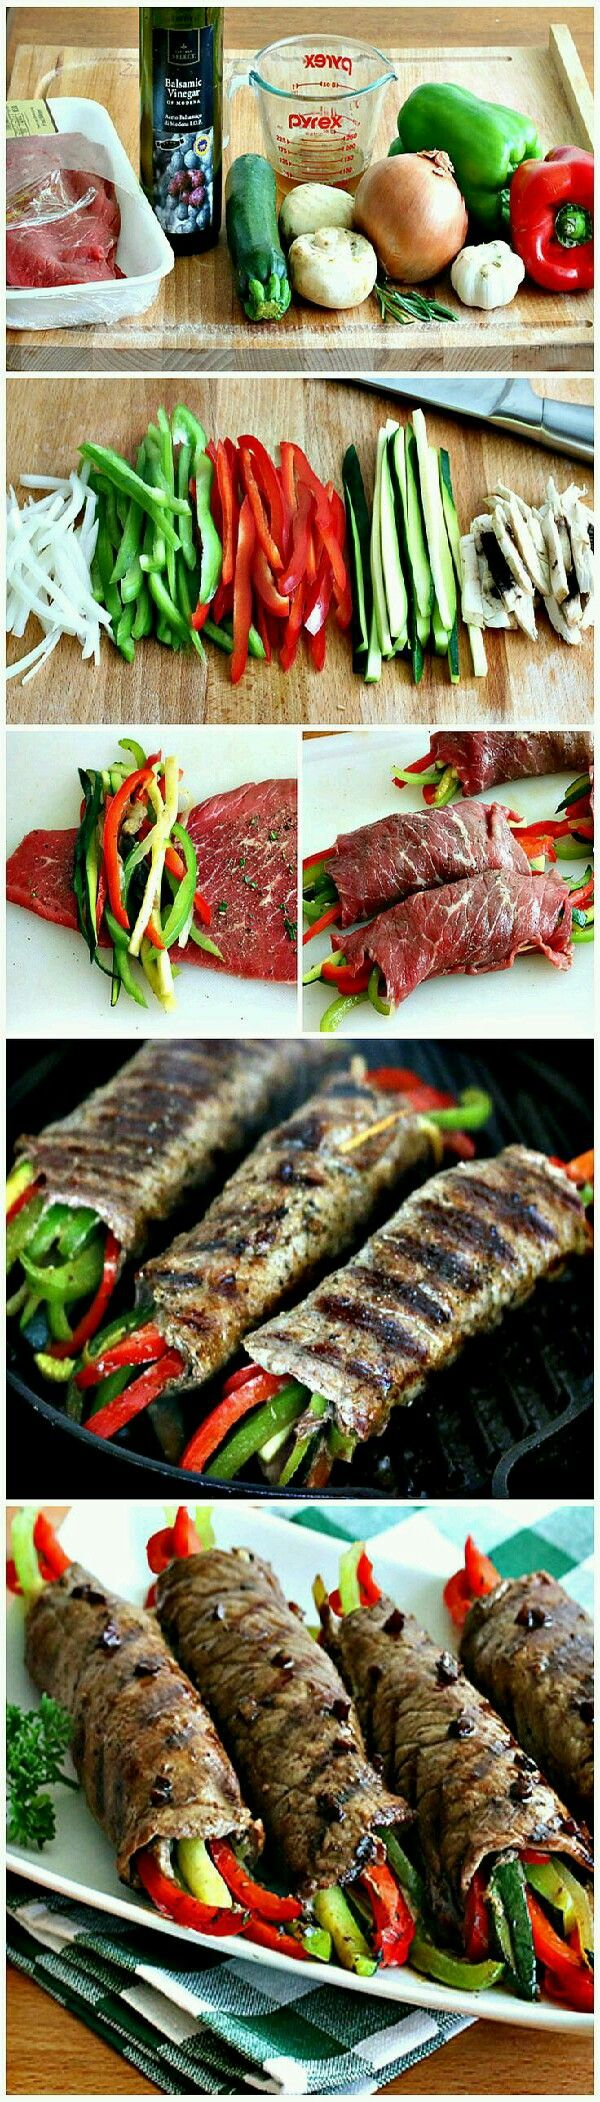 Balsamic glazed steak rolls.